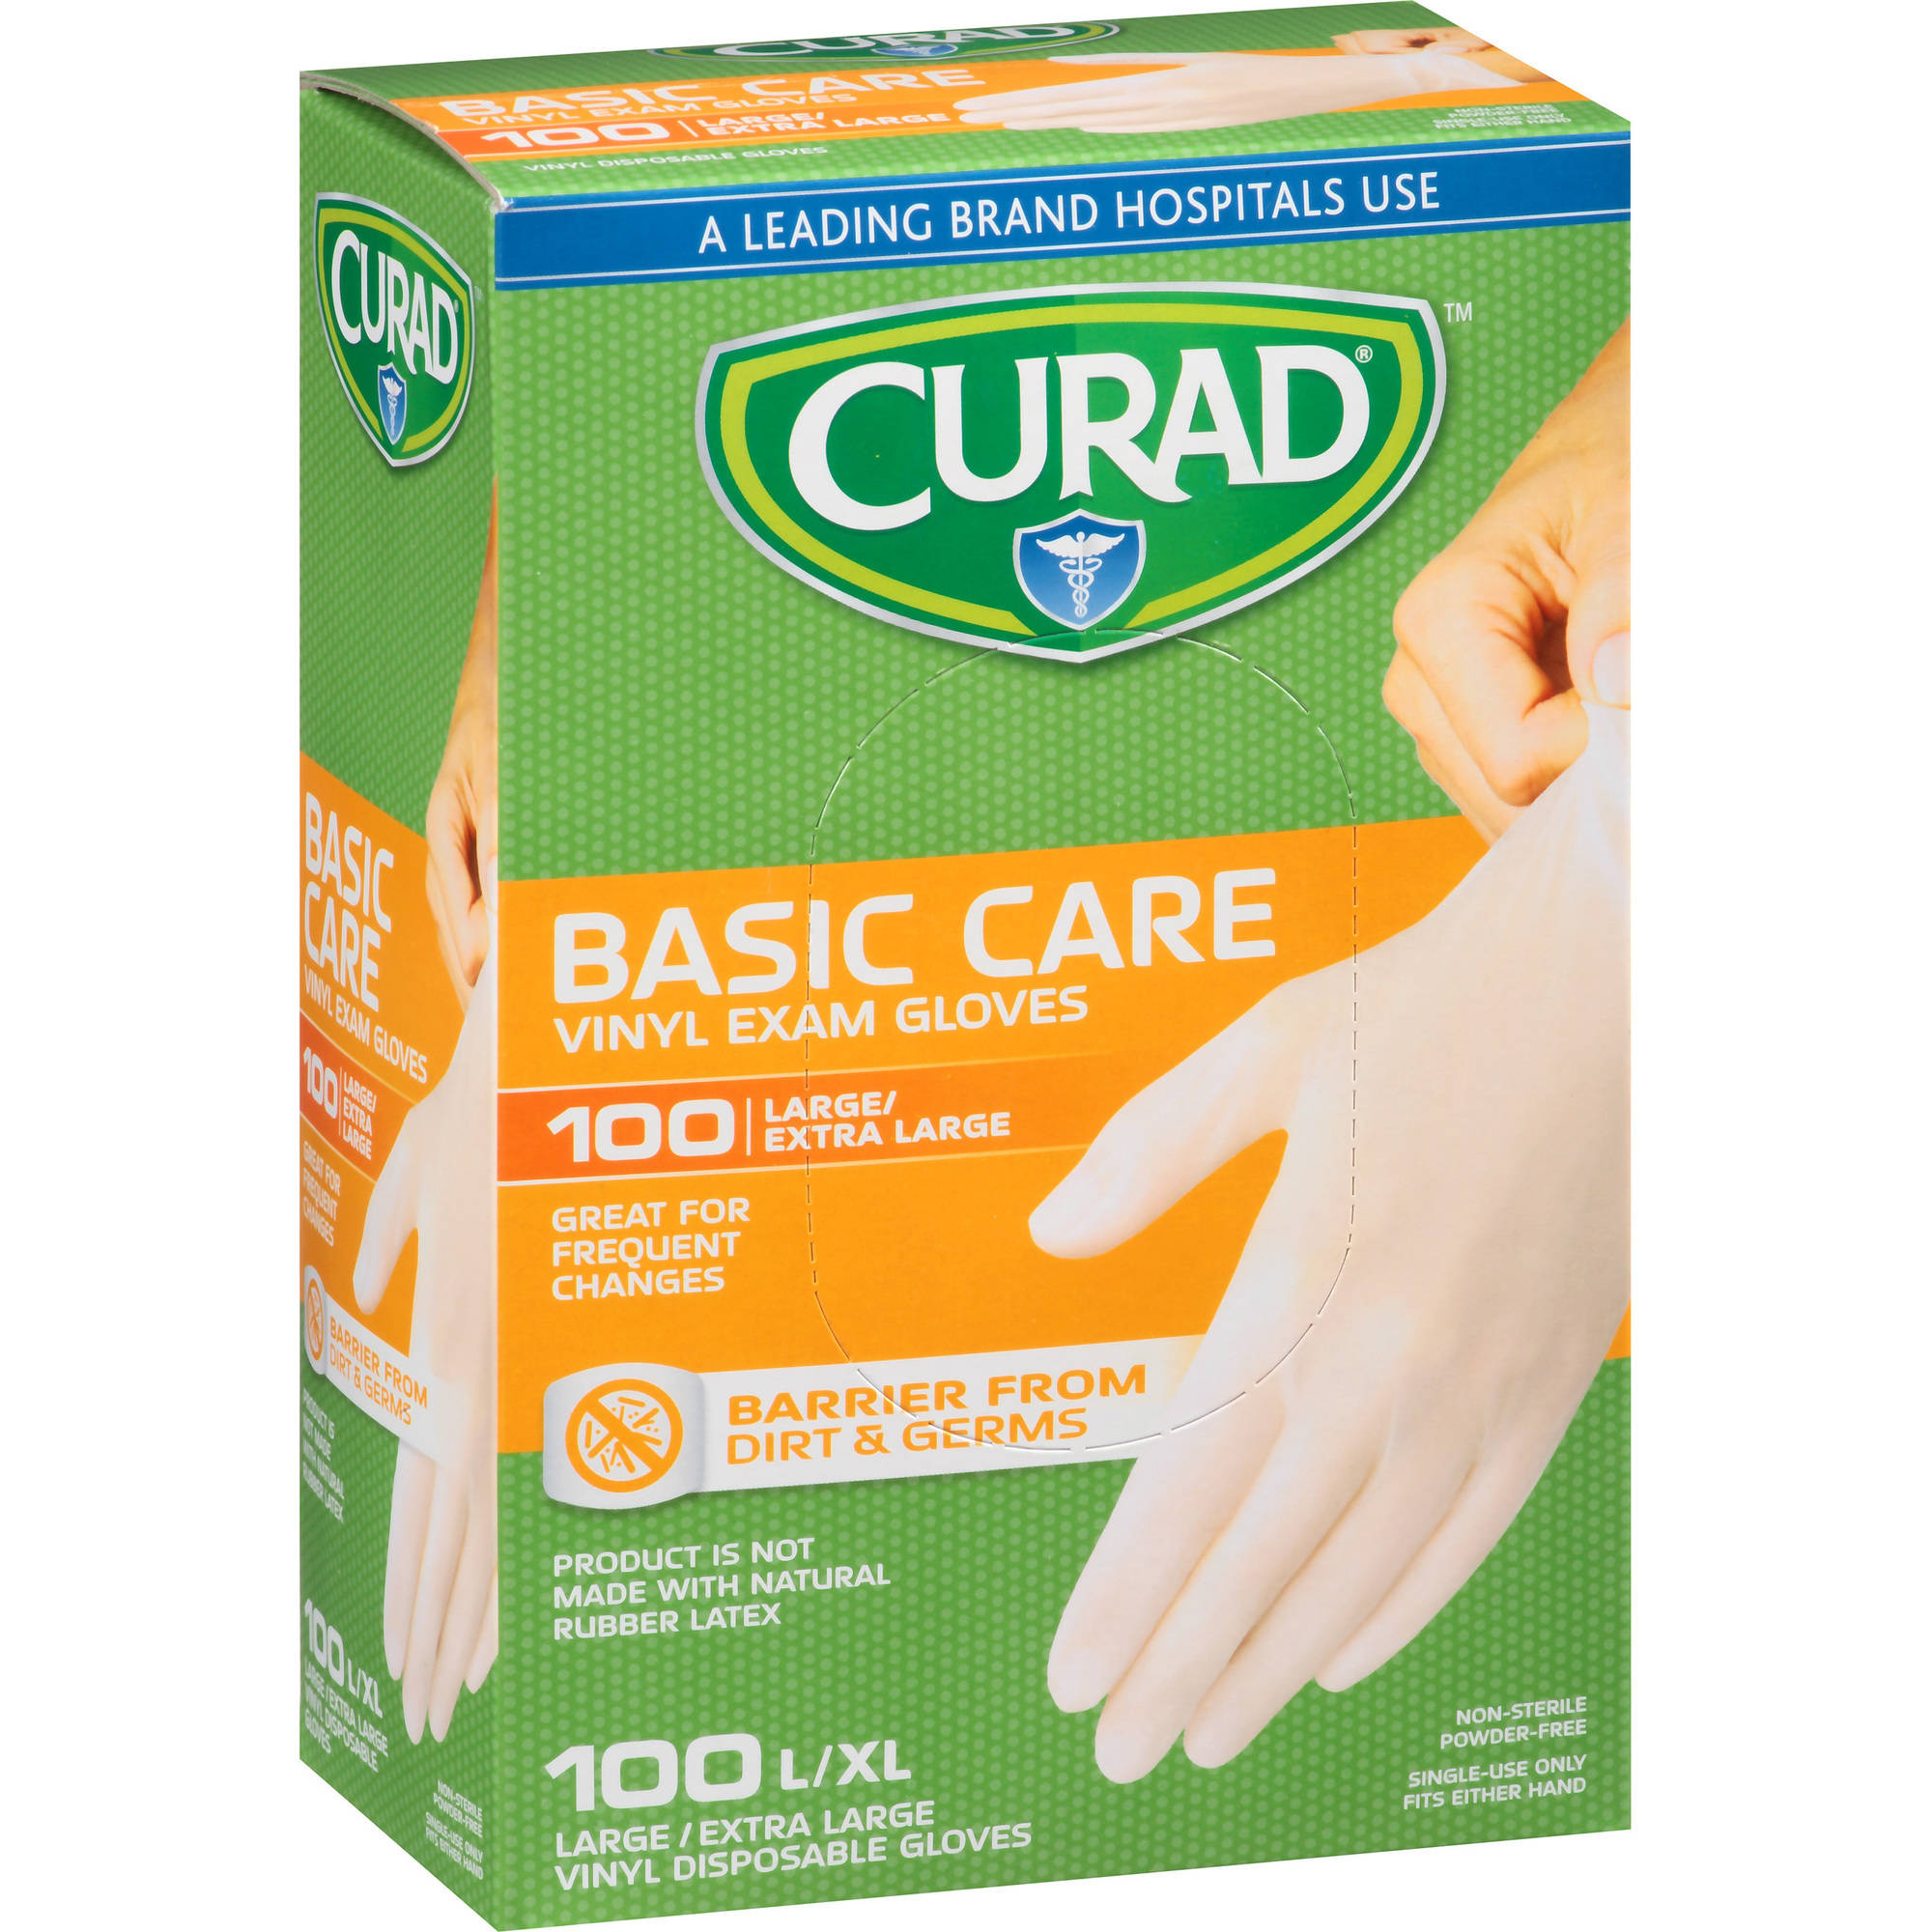 Curad Basic Care Vinyl Exam Gloves, Large/Extra Large, 100 count